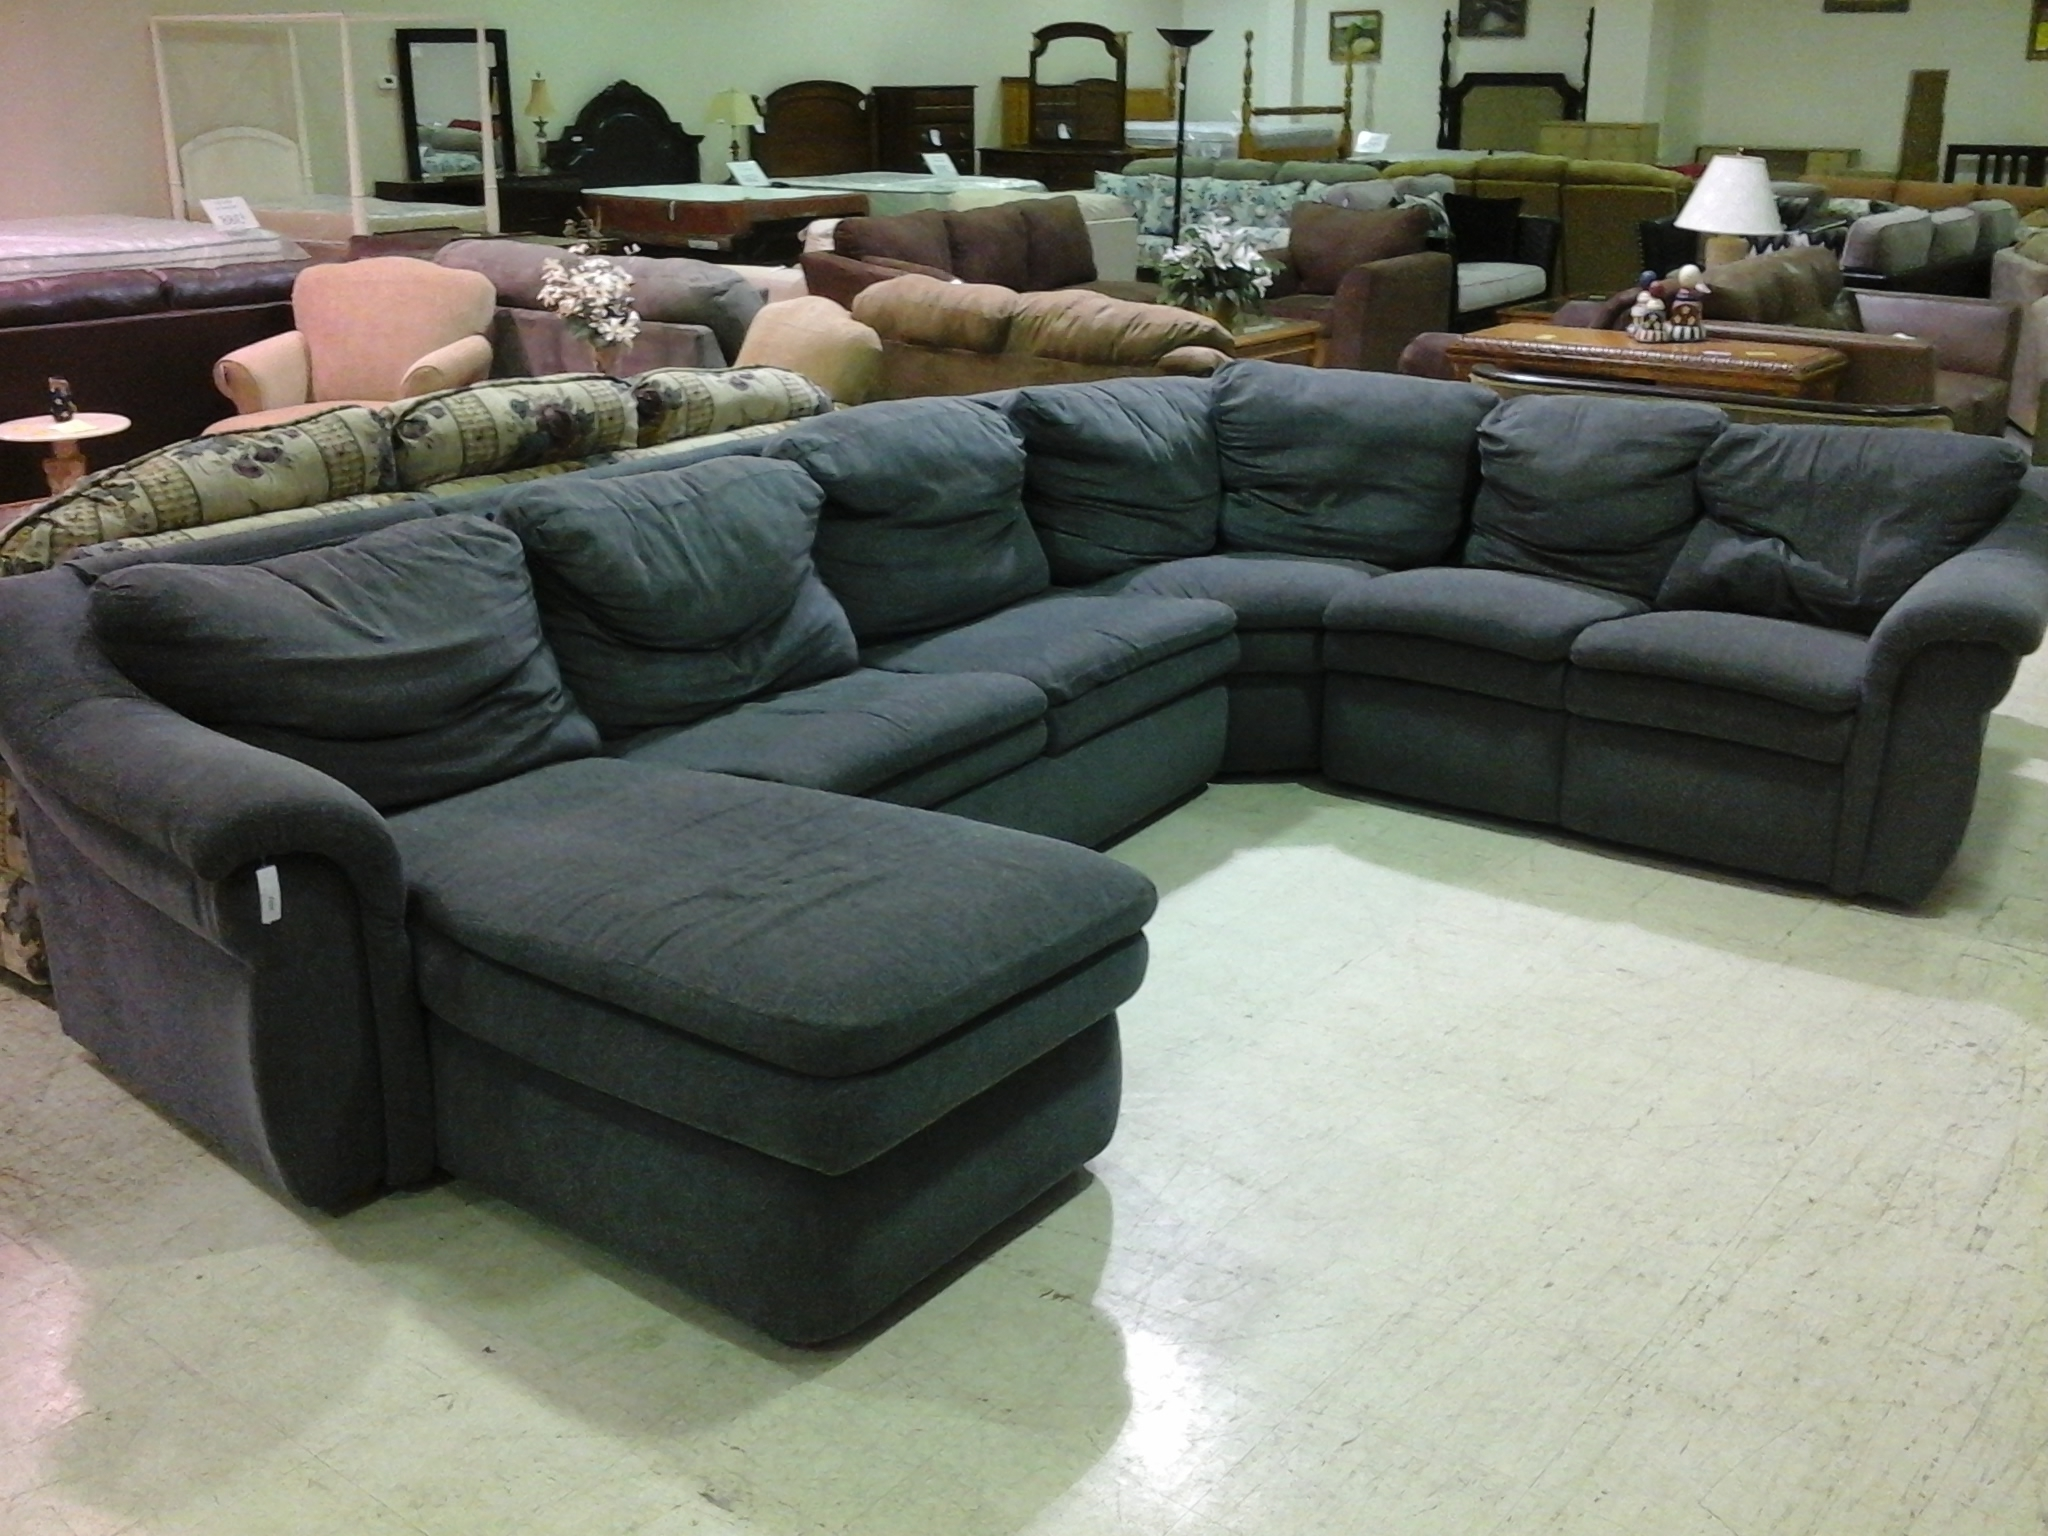 Pinterest With Regard To Sectional Sofas At Lazy Boy (View 12 of 20)